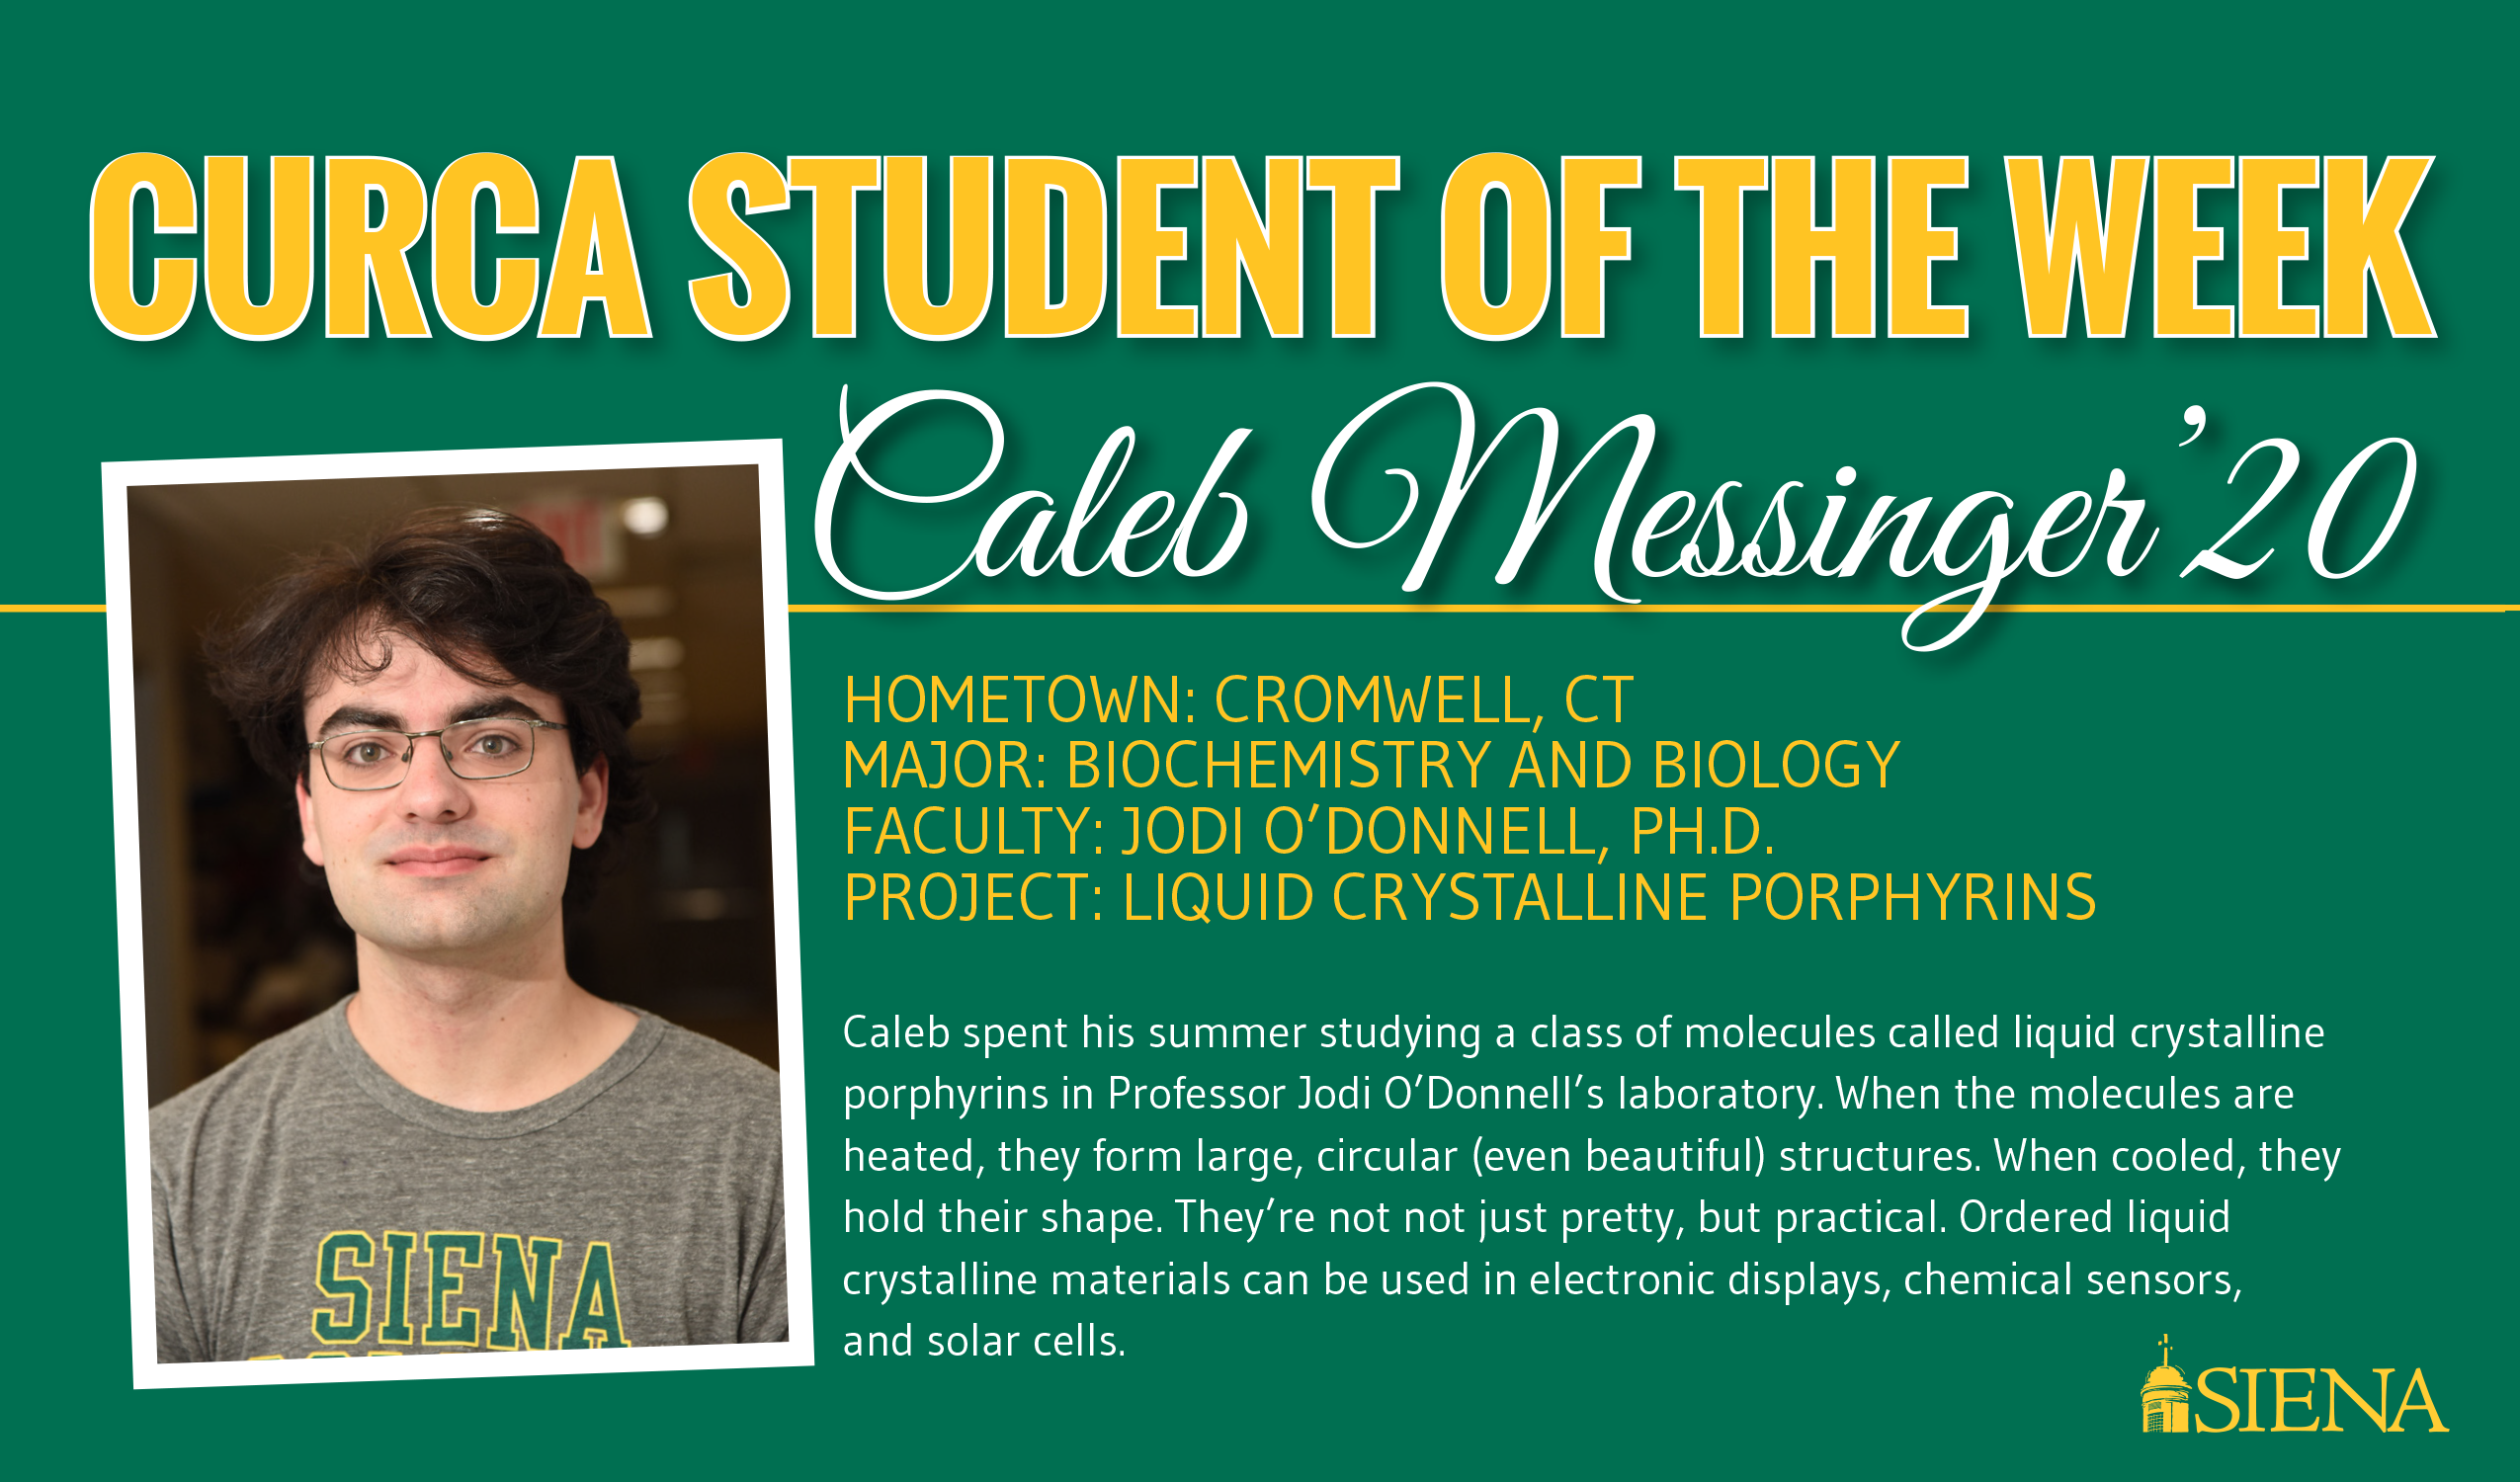 CURCA Student of the Week October 9